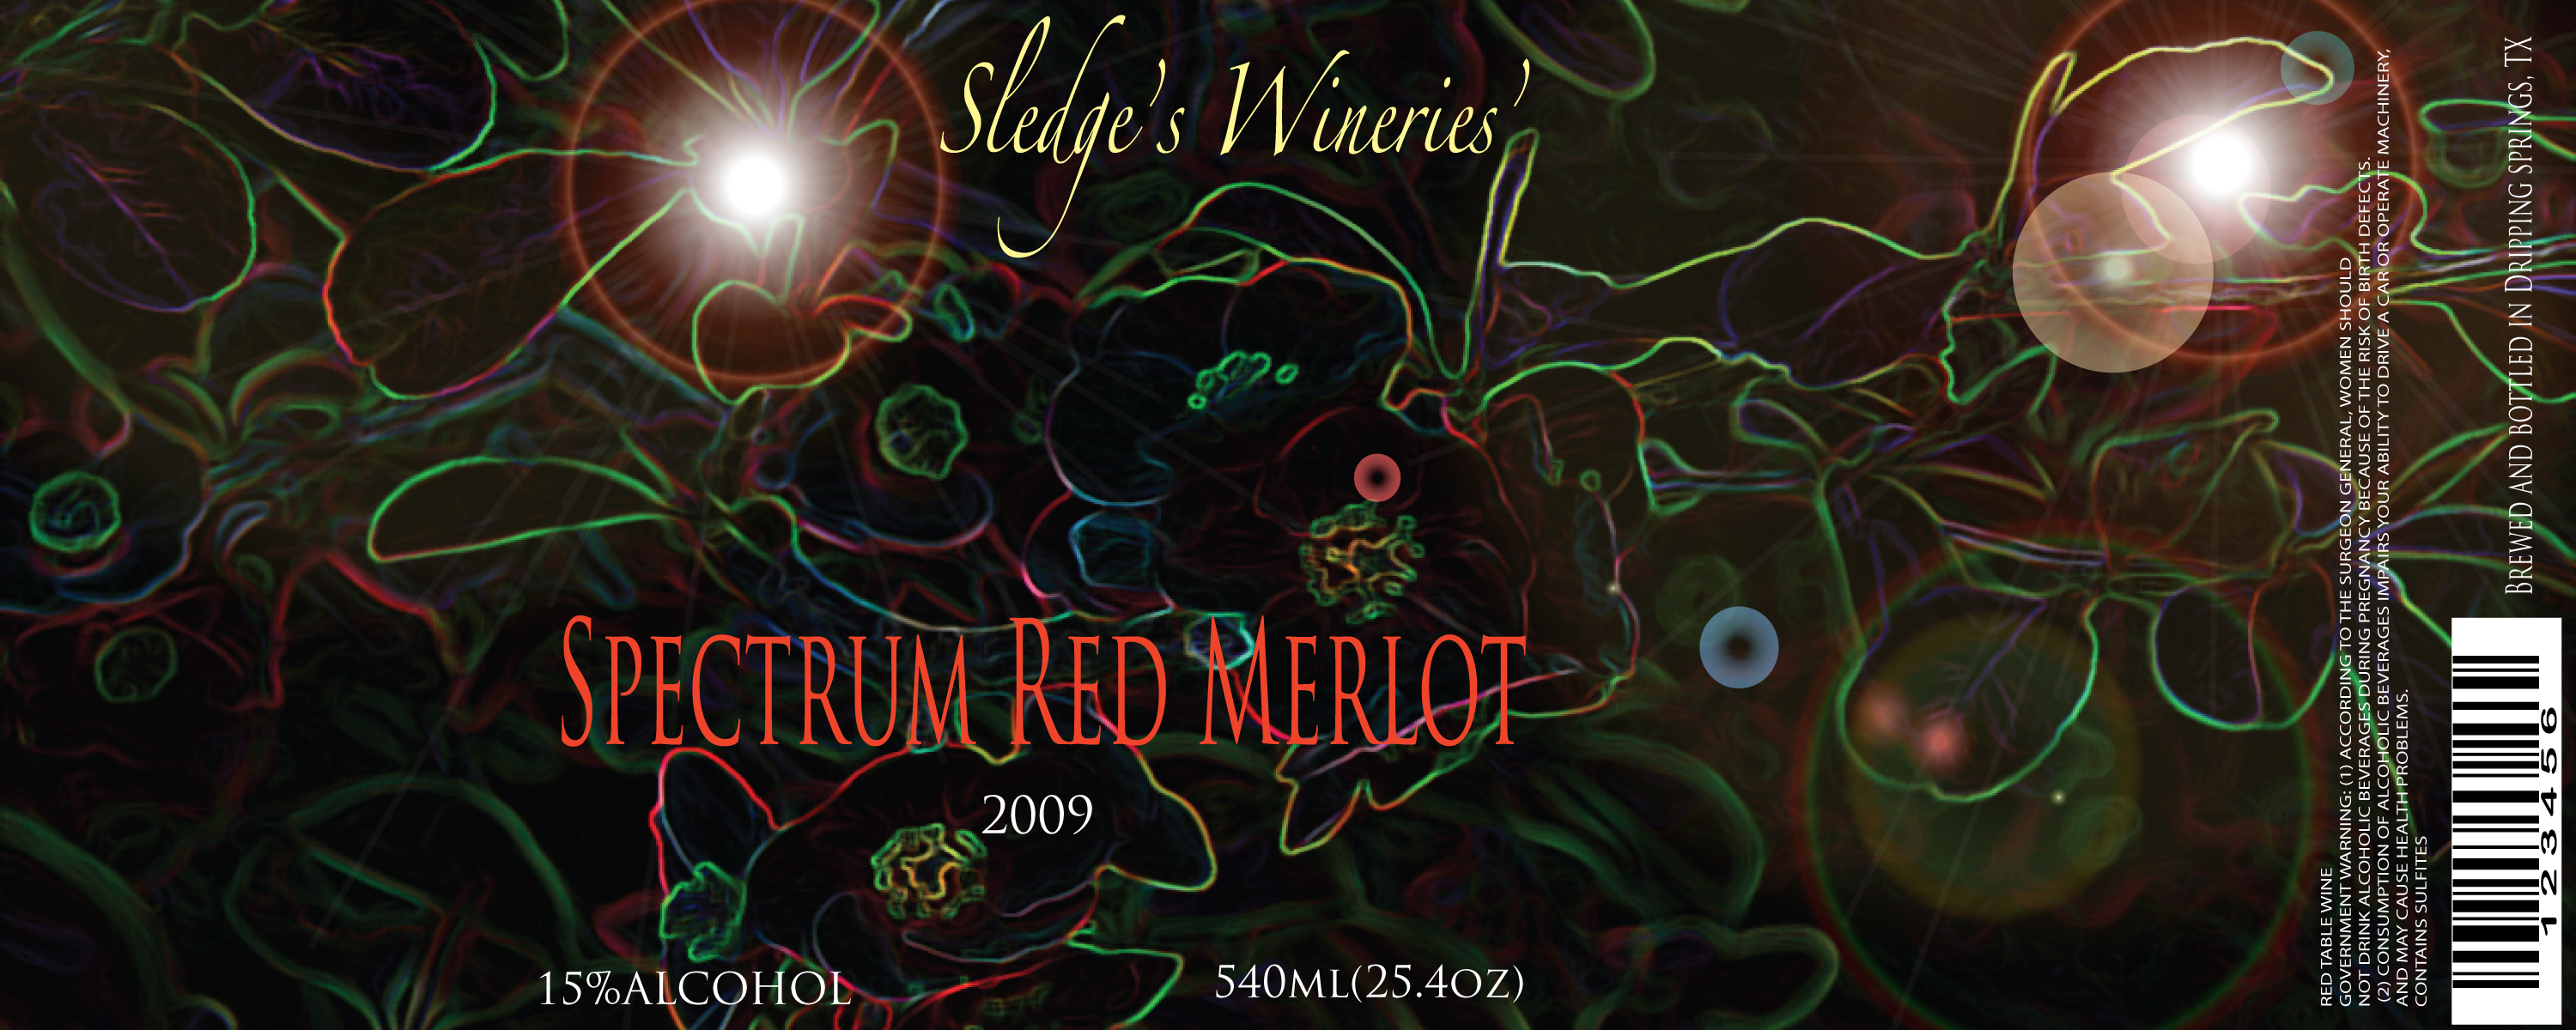 red merlot concept label by mendoza0089